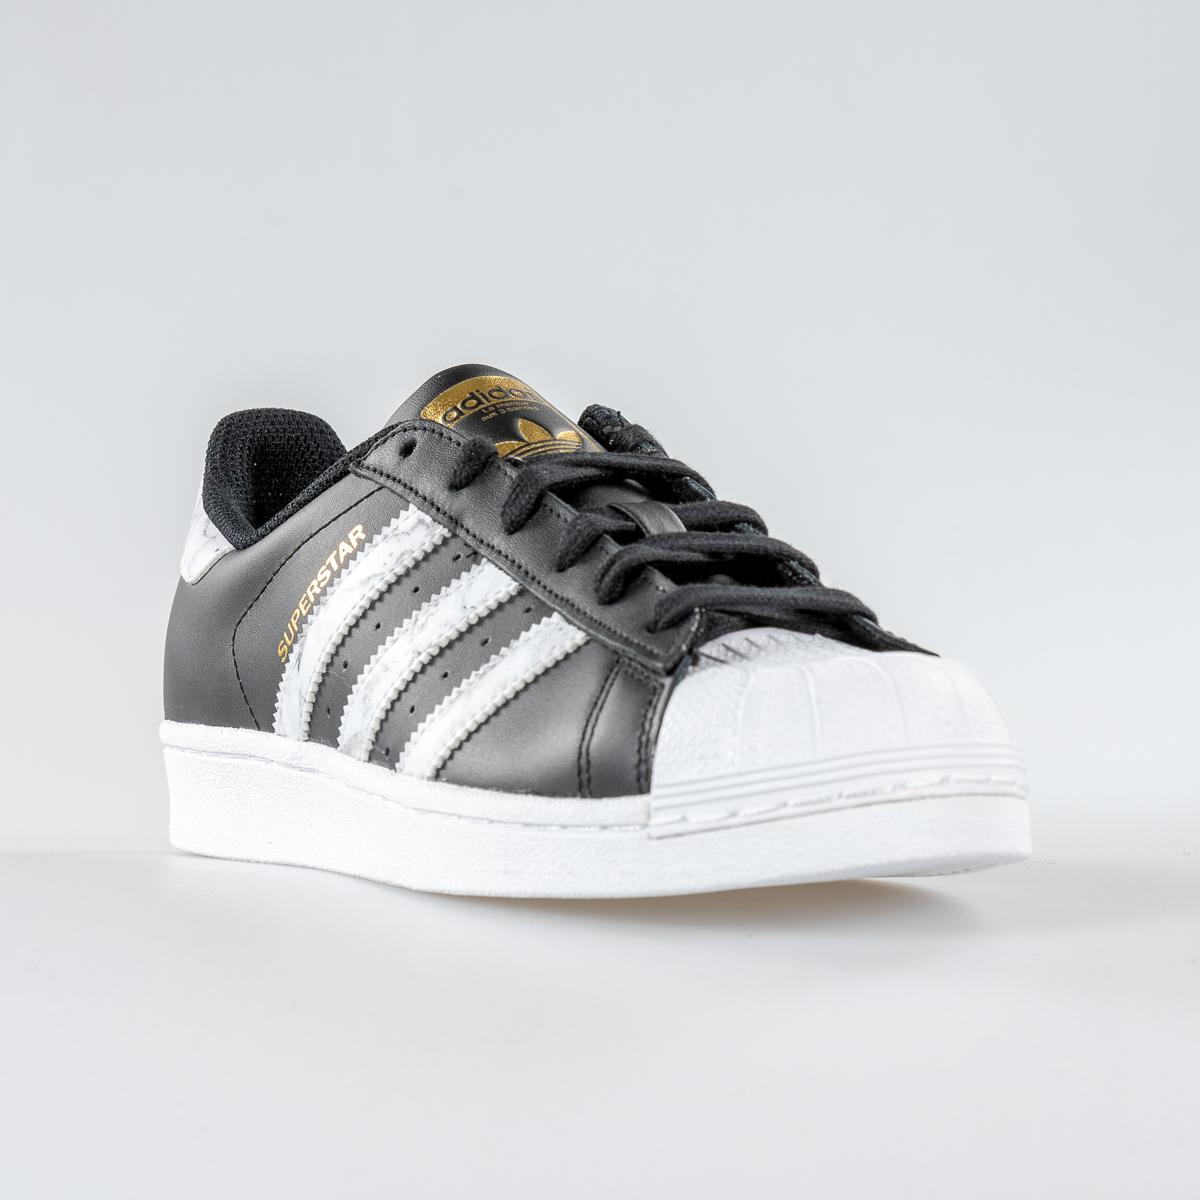 Gold Adidas White Uomo Black D96800 Superstar Scarpa On0kwP